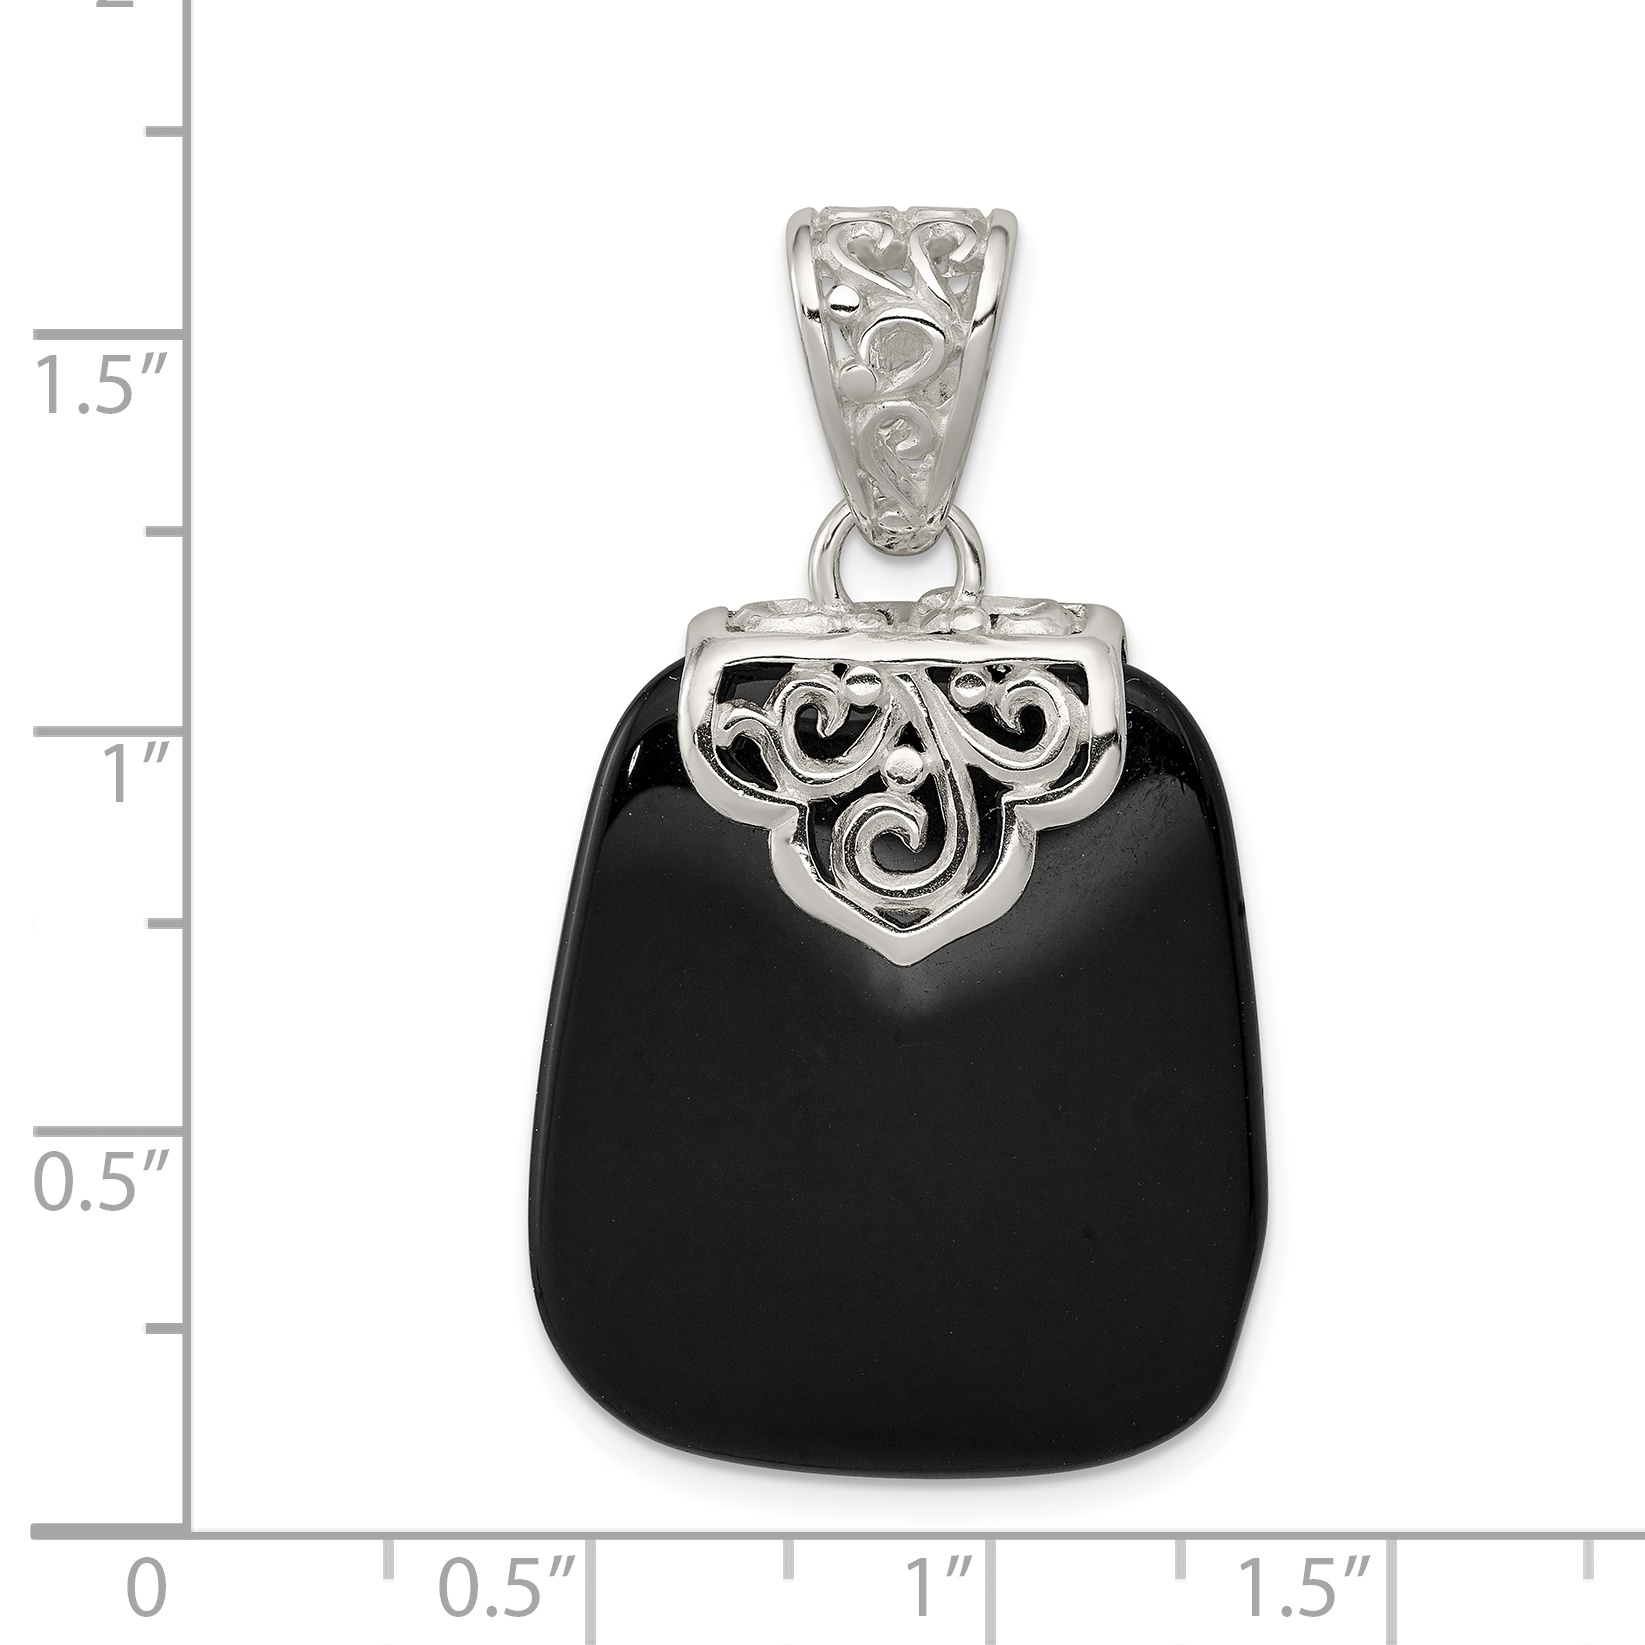 925 Sterling Silver Black Onyx Pendant Charm Necklace Natural Stone Fine Jewelry Gifts For Women For Her - image 1 de 2